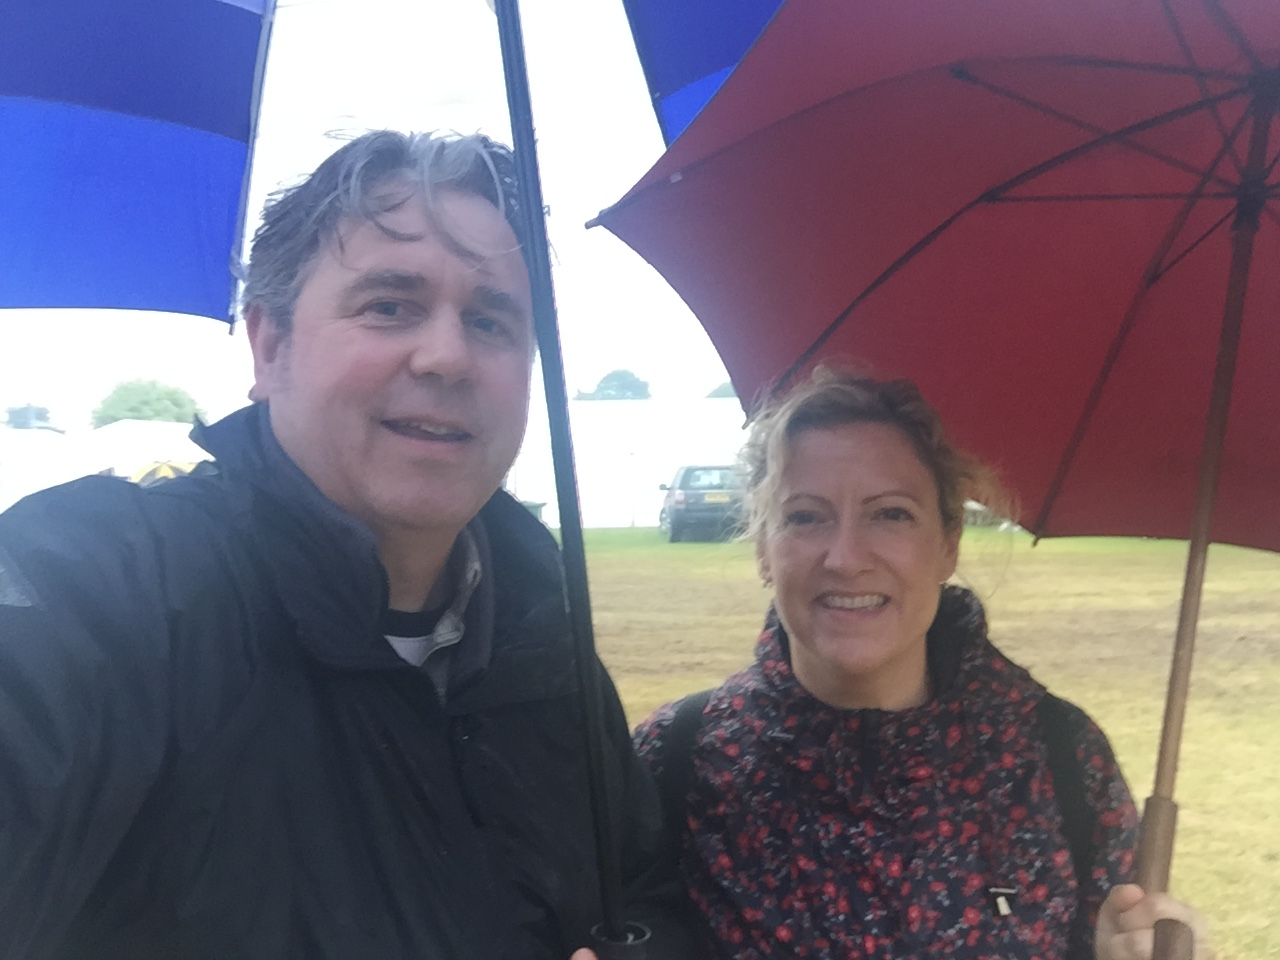 Andrew and Steph at a rainy Royal Norfolk Show.